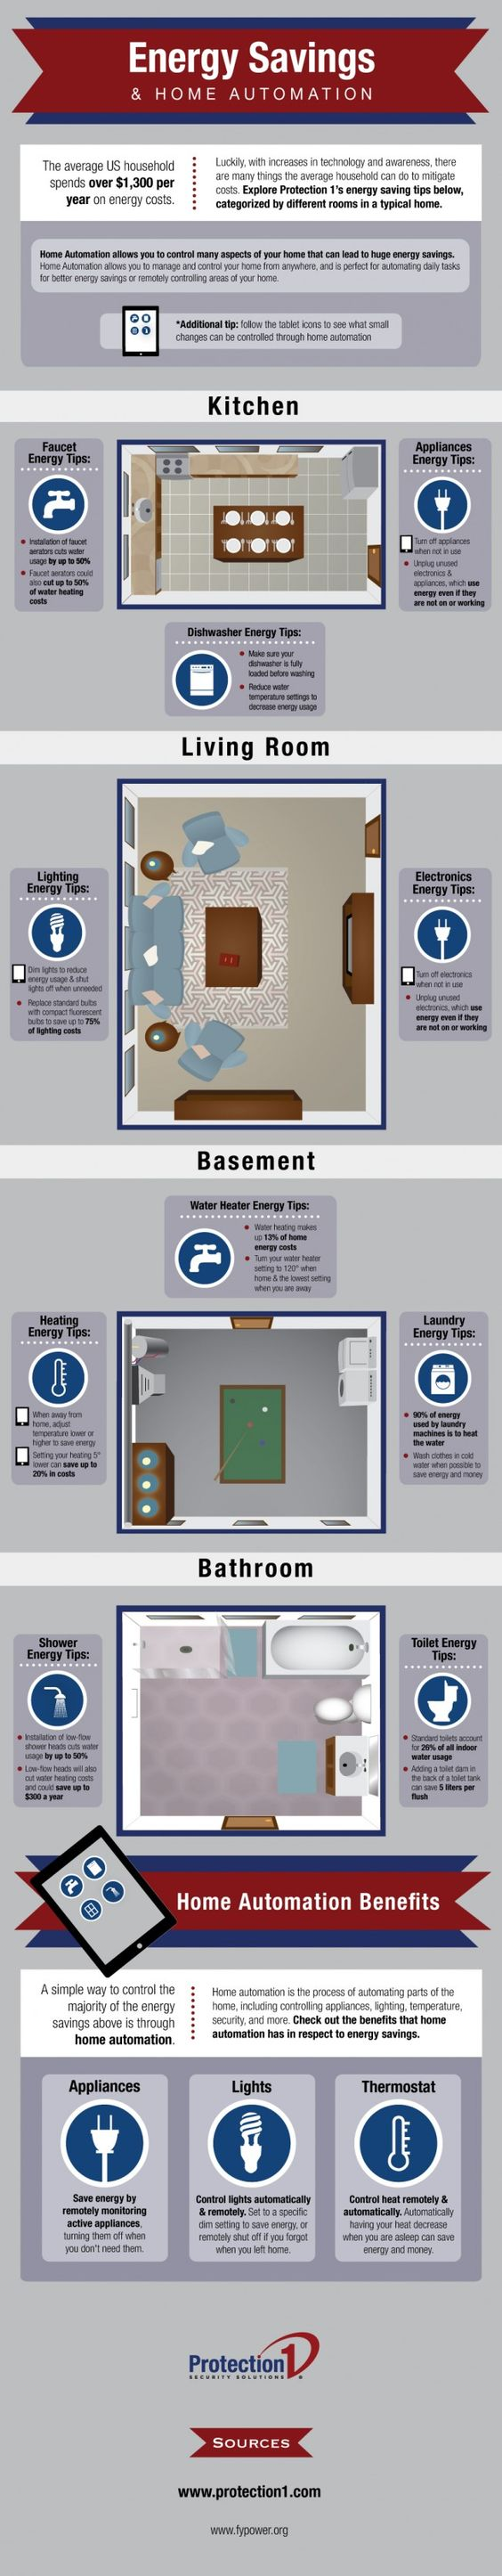 Home Automation Energy Savings Tips Design You Trust